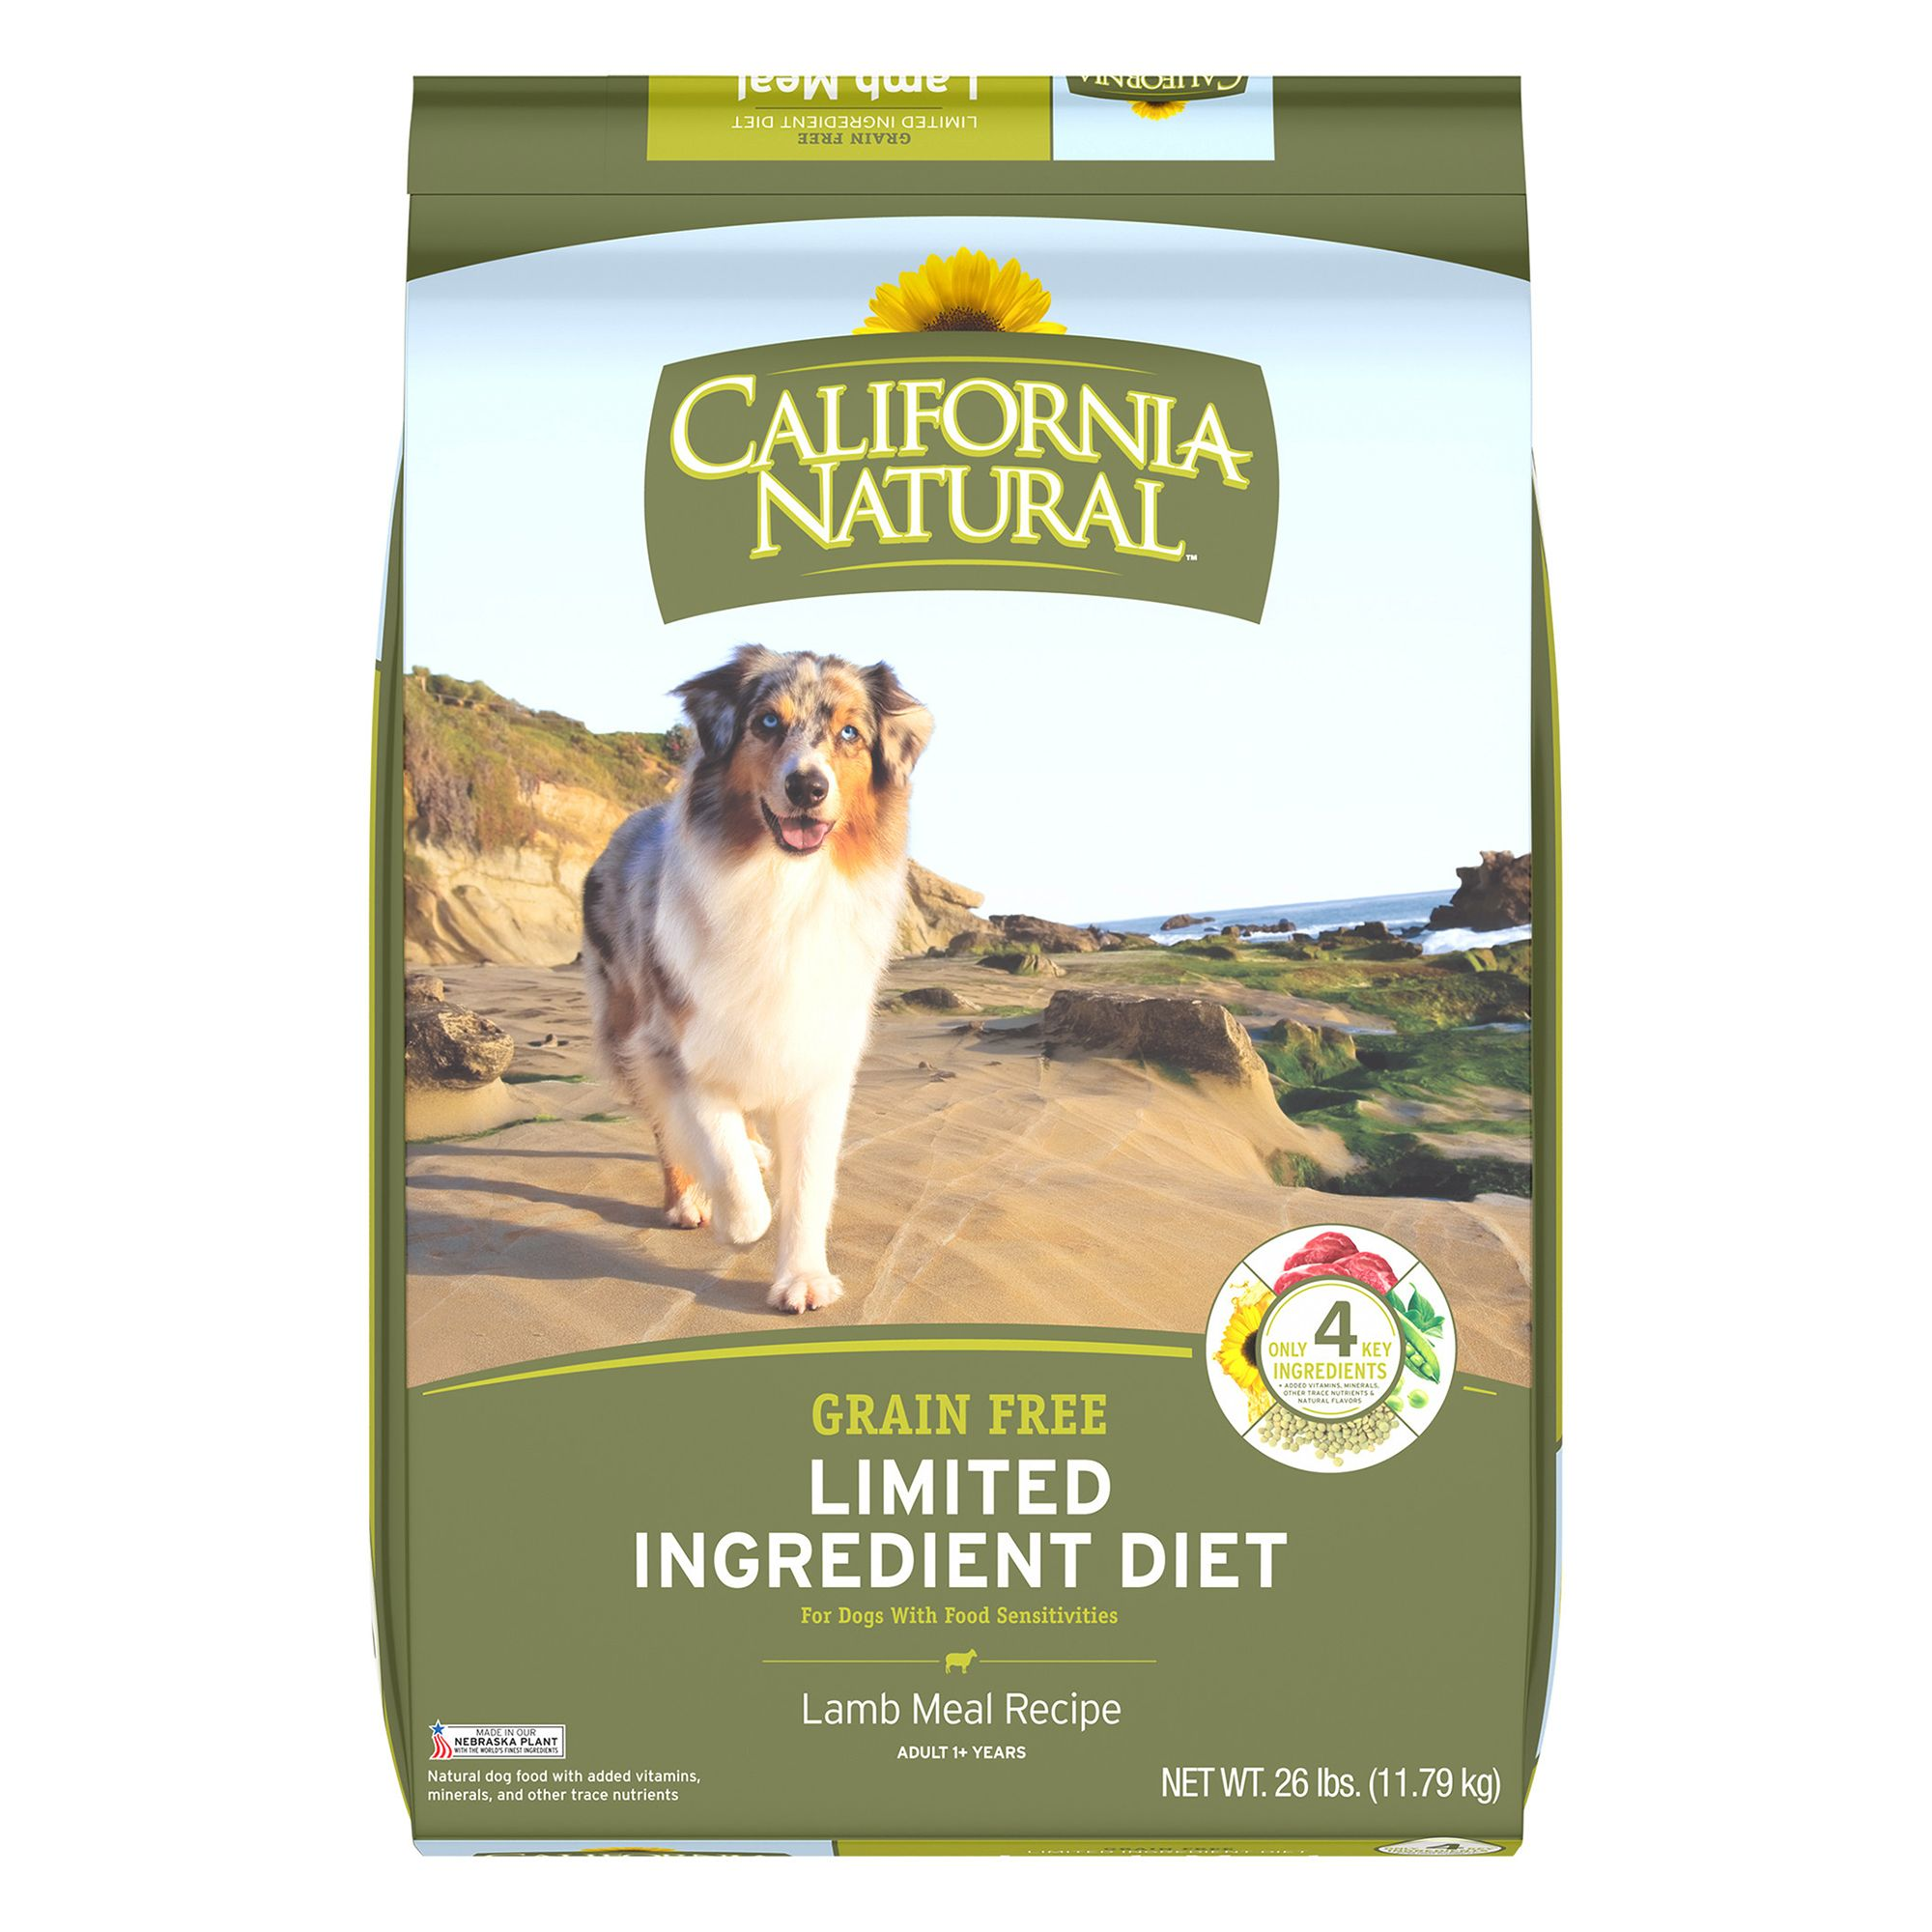 California Natural Dog Food Grain Free Lamb